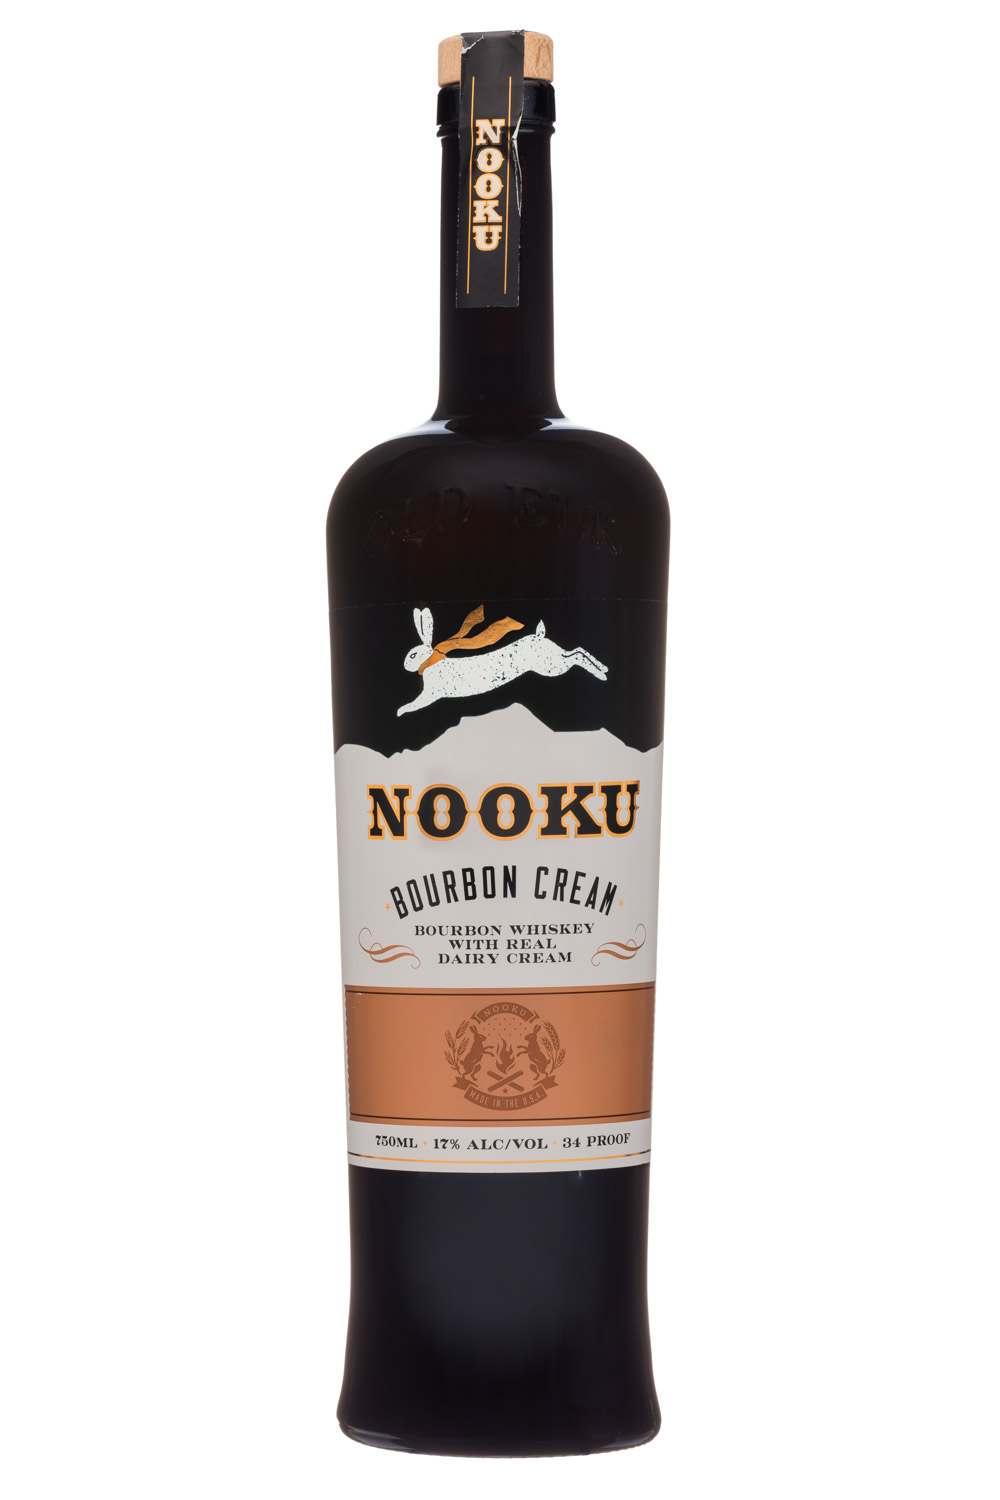 Old Elk Distilleries: OldElkDistilleries-750ml-Nooku-BourbonCream